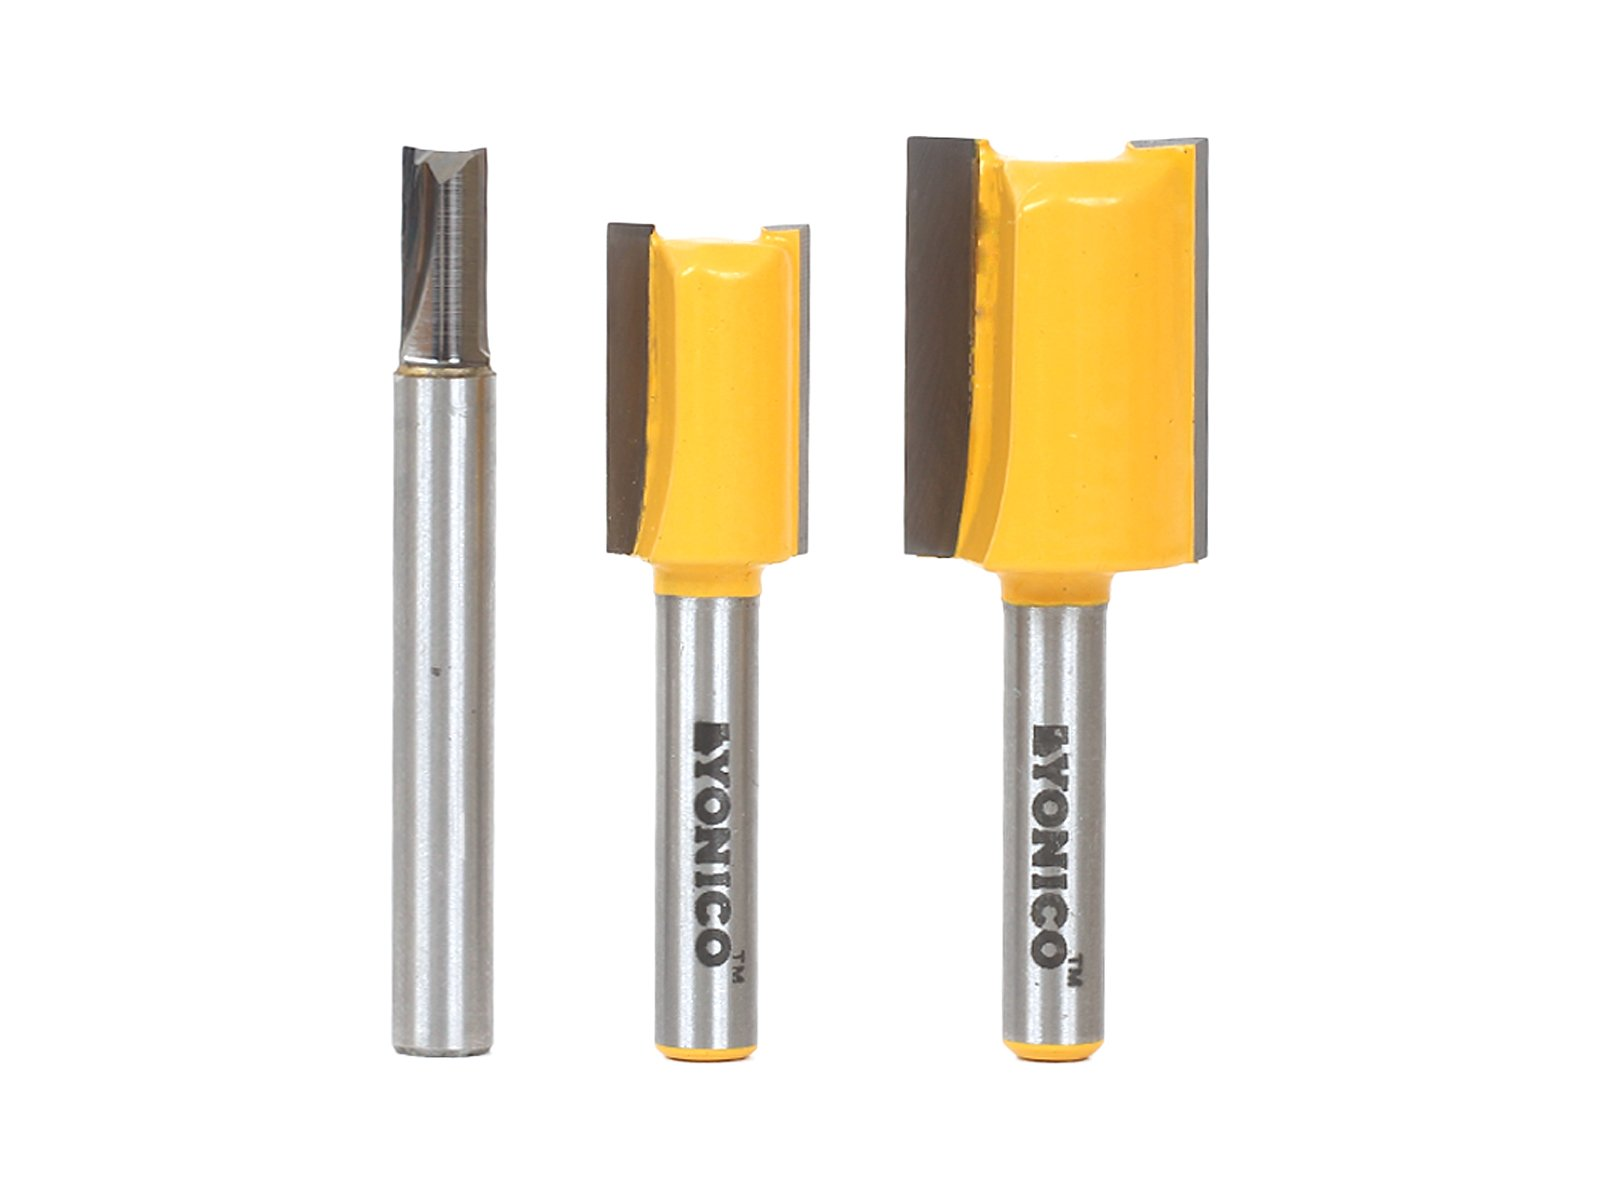 Yonico 14323q 3 Undersized Plywood Dado Router Bits for 3/4'', 1/2'' & 1/4'' Plywood with 1/4'' Shank